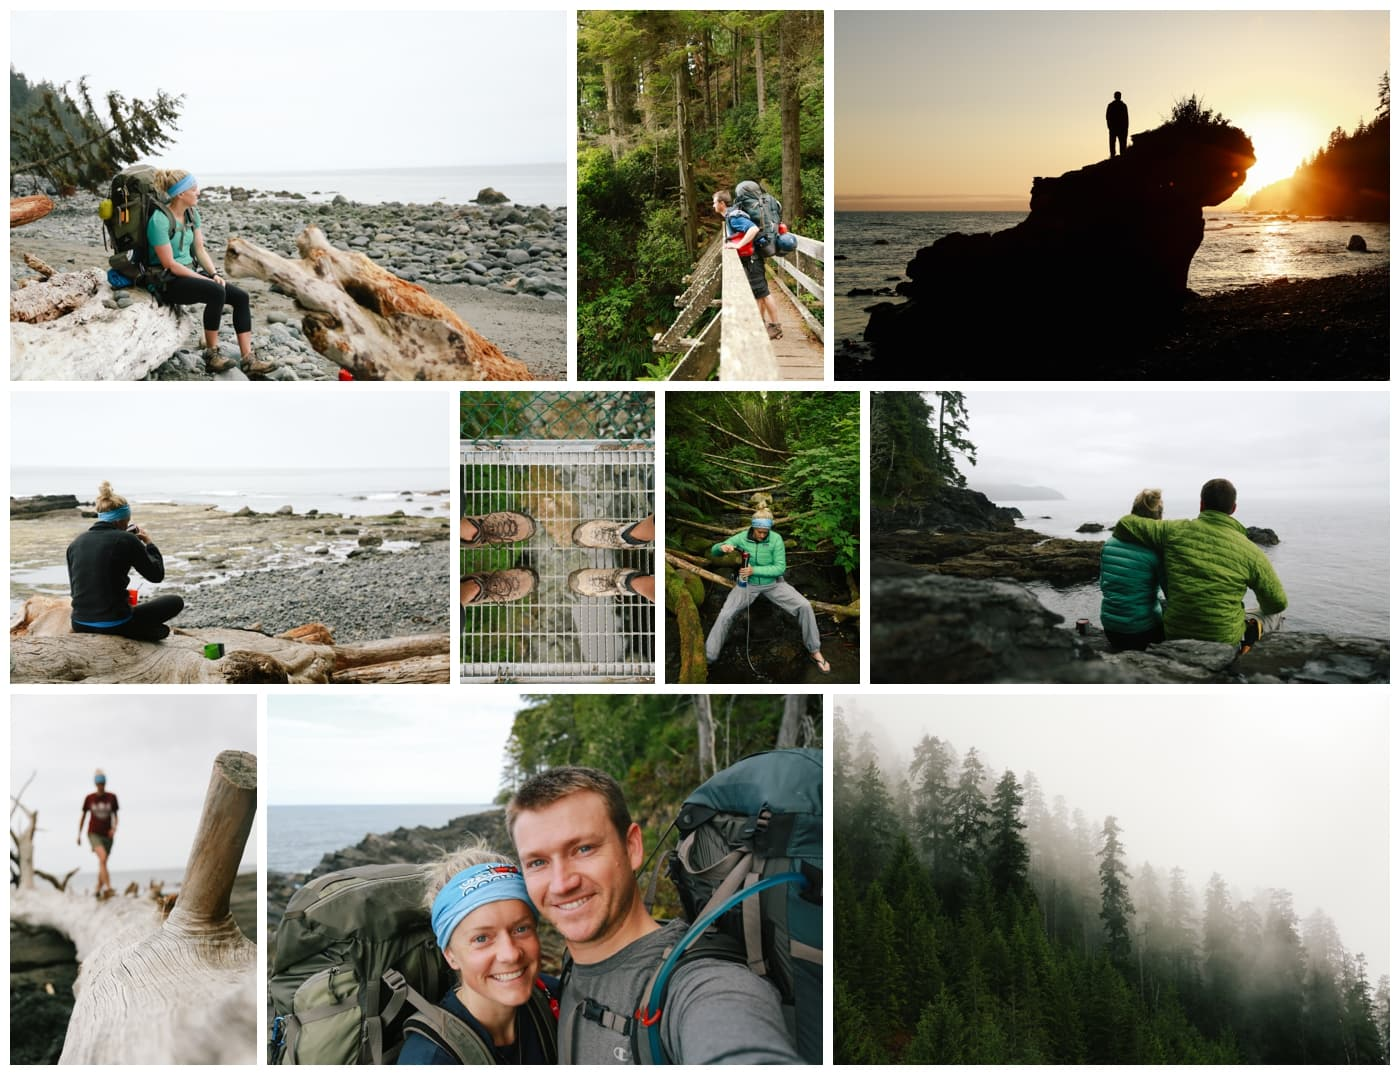 Pictures from a couple who are hiking the Juan de Fuca trail for their honeymoon